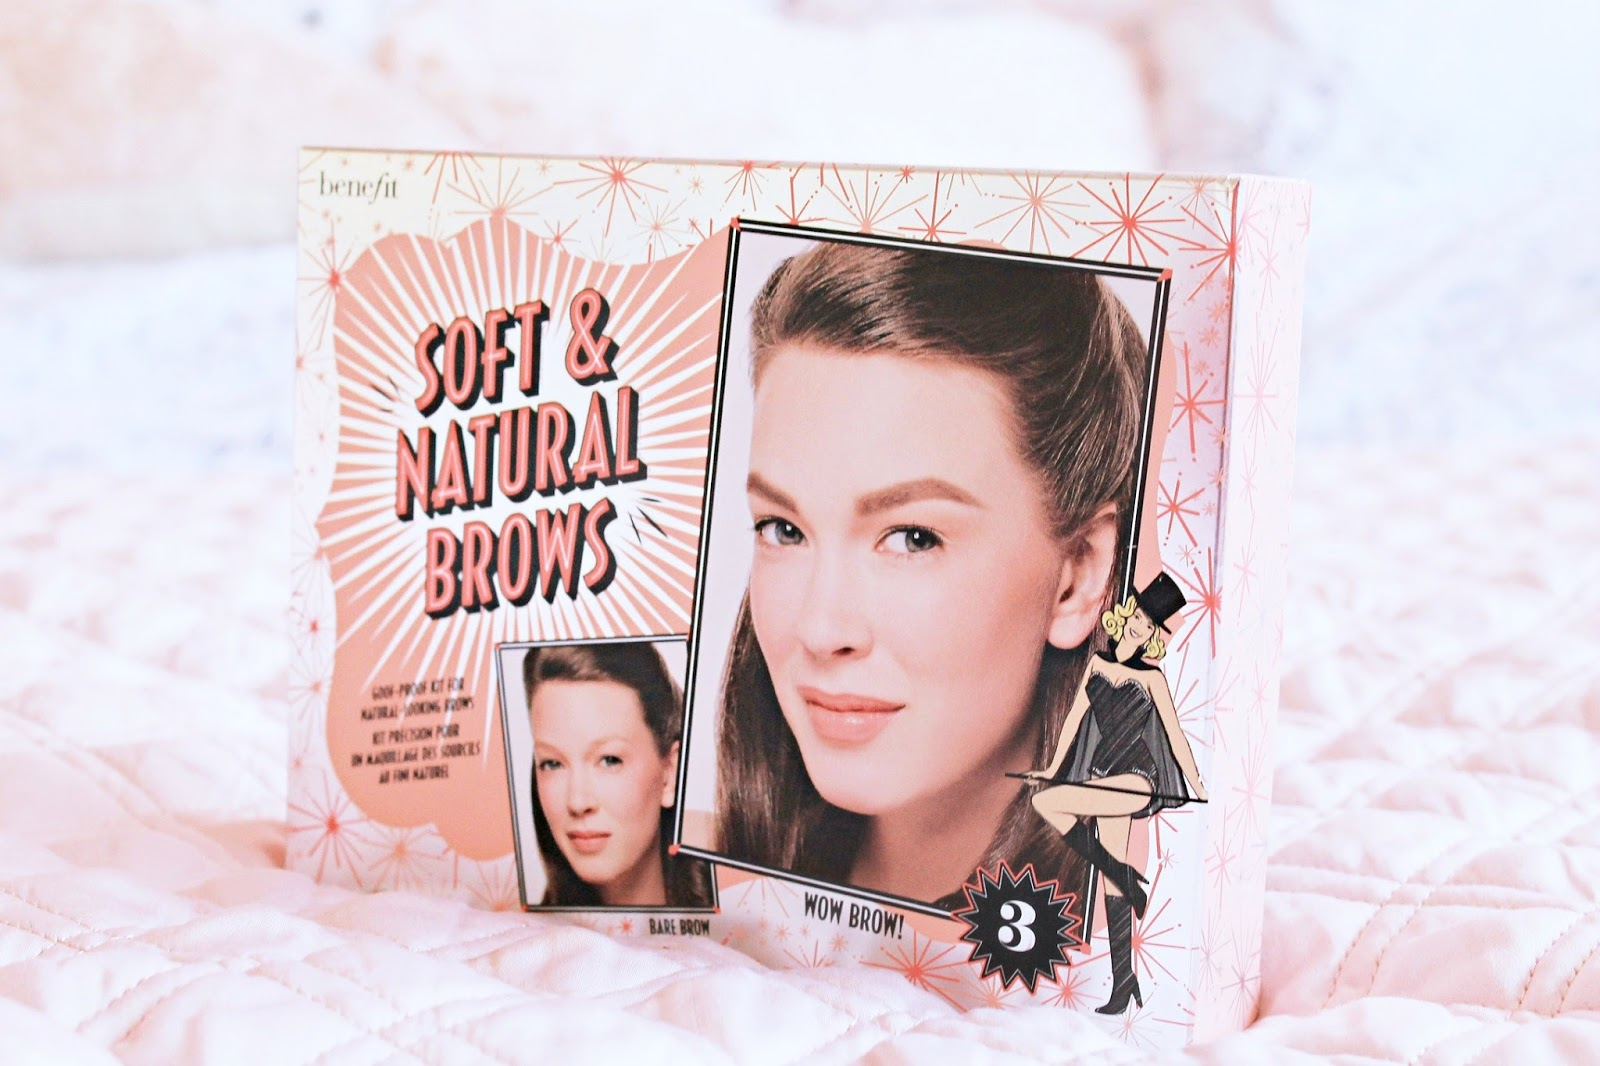 Benefit Cosmetics Soft and Natural brows kit review and swatches